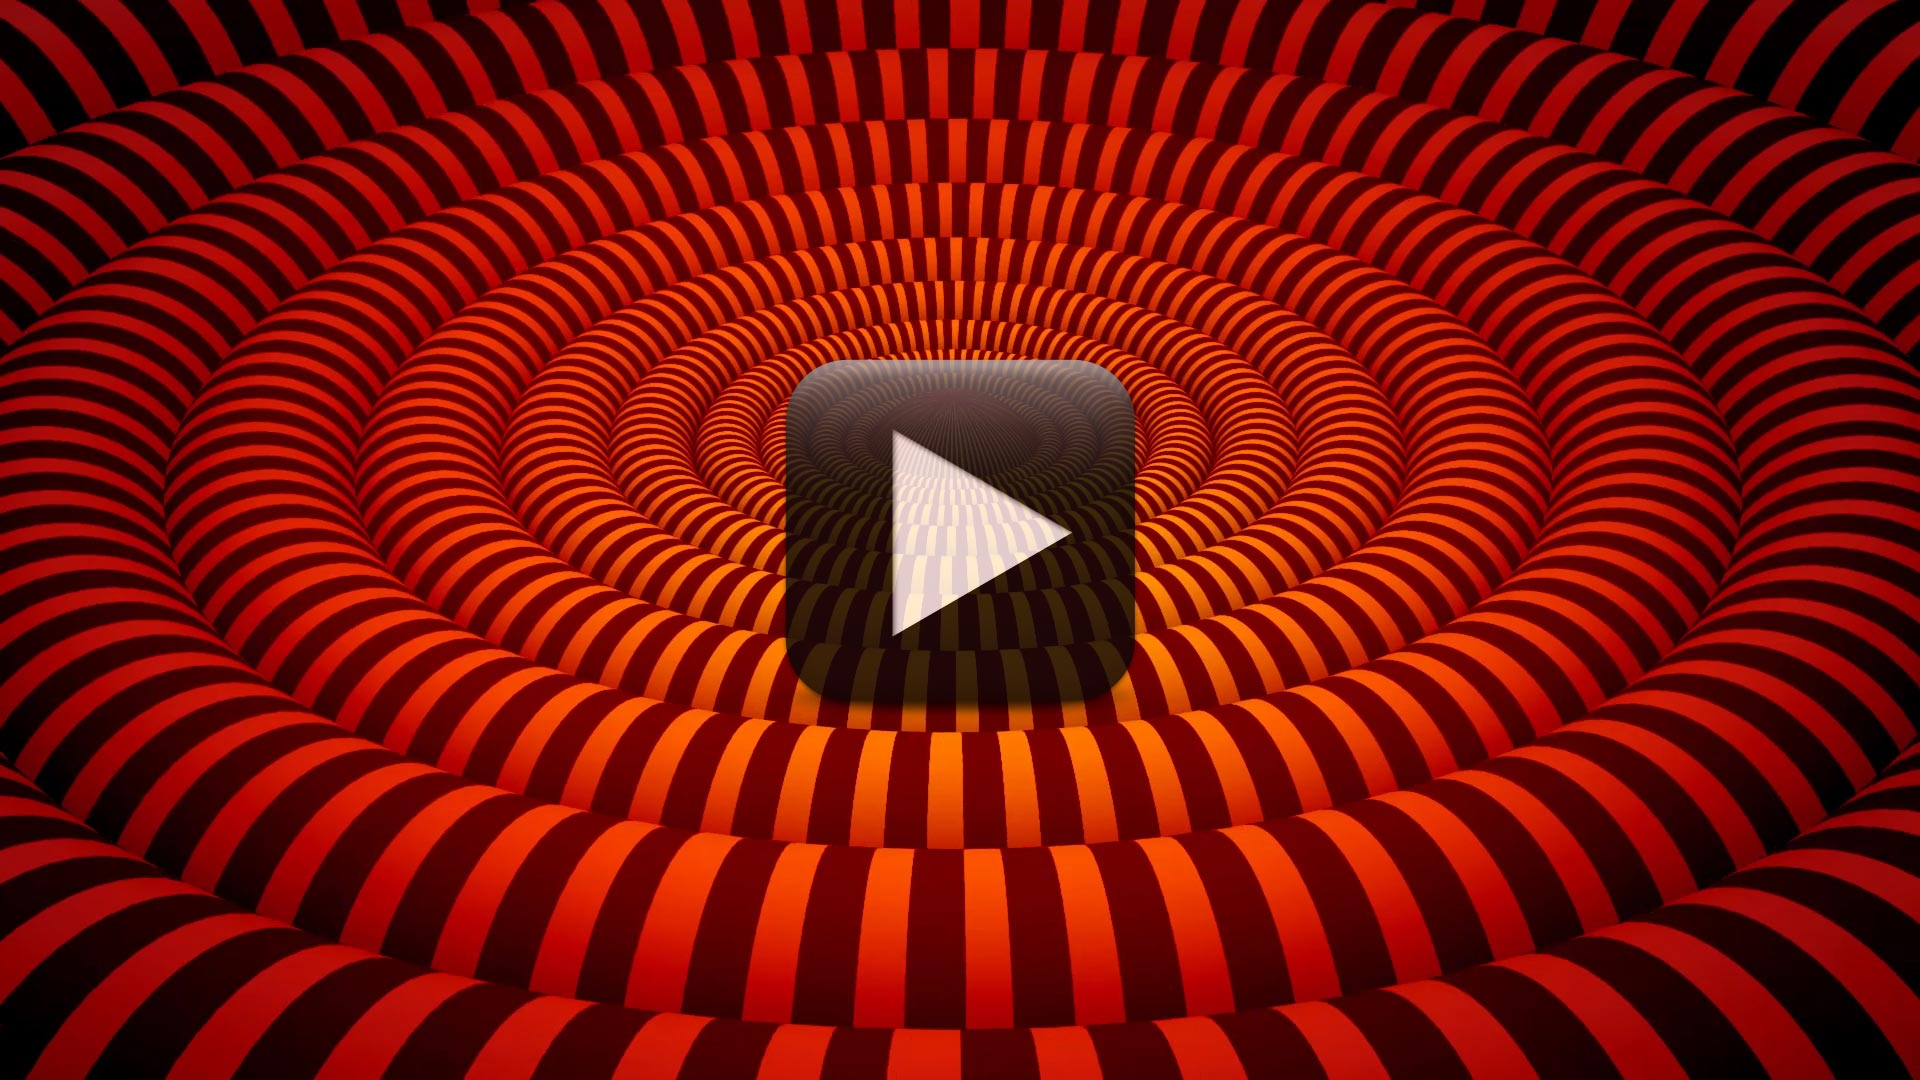 Hypnosis Circle Abstract Video Background